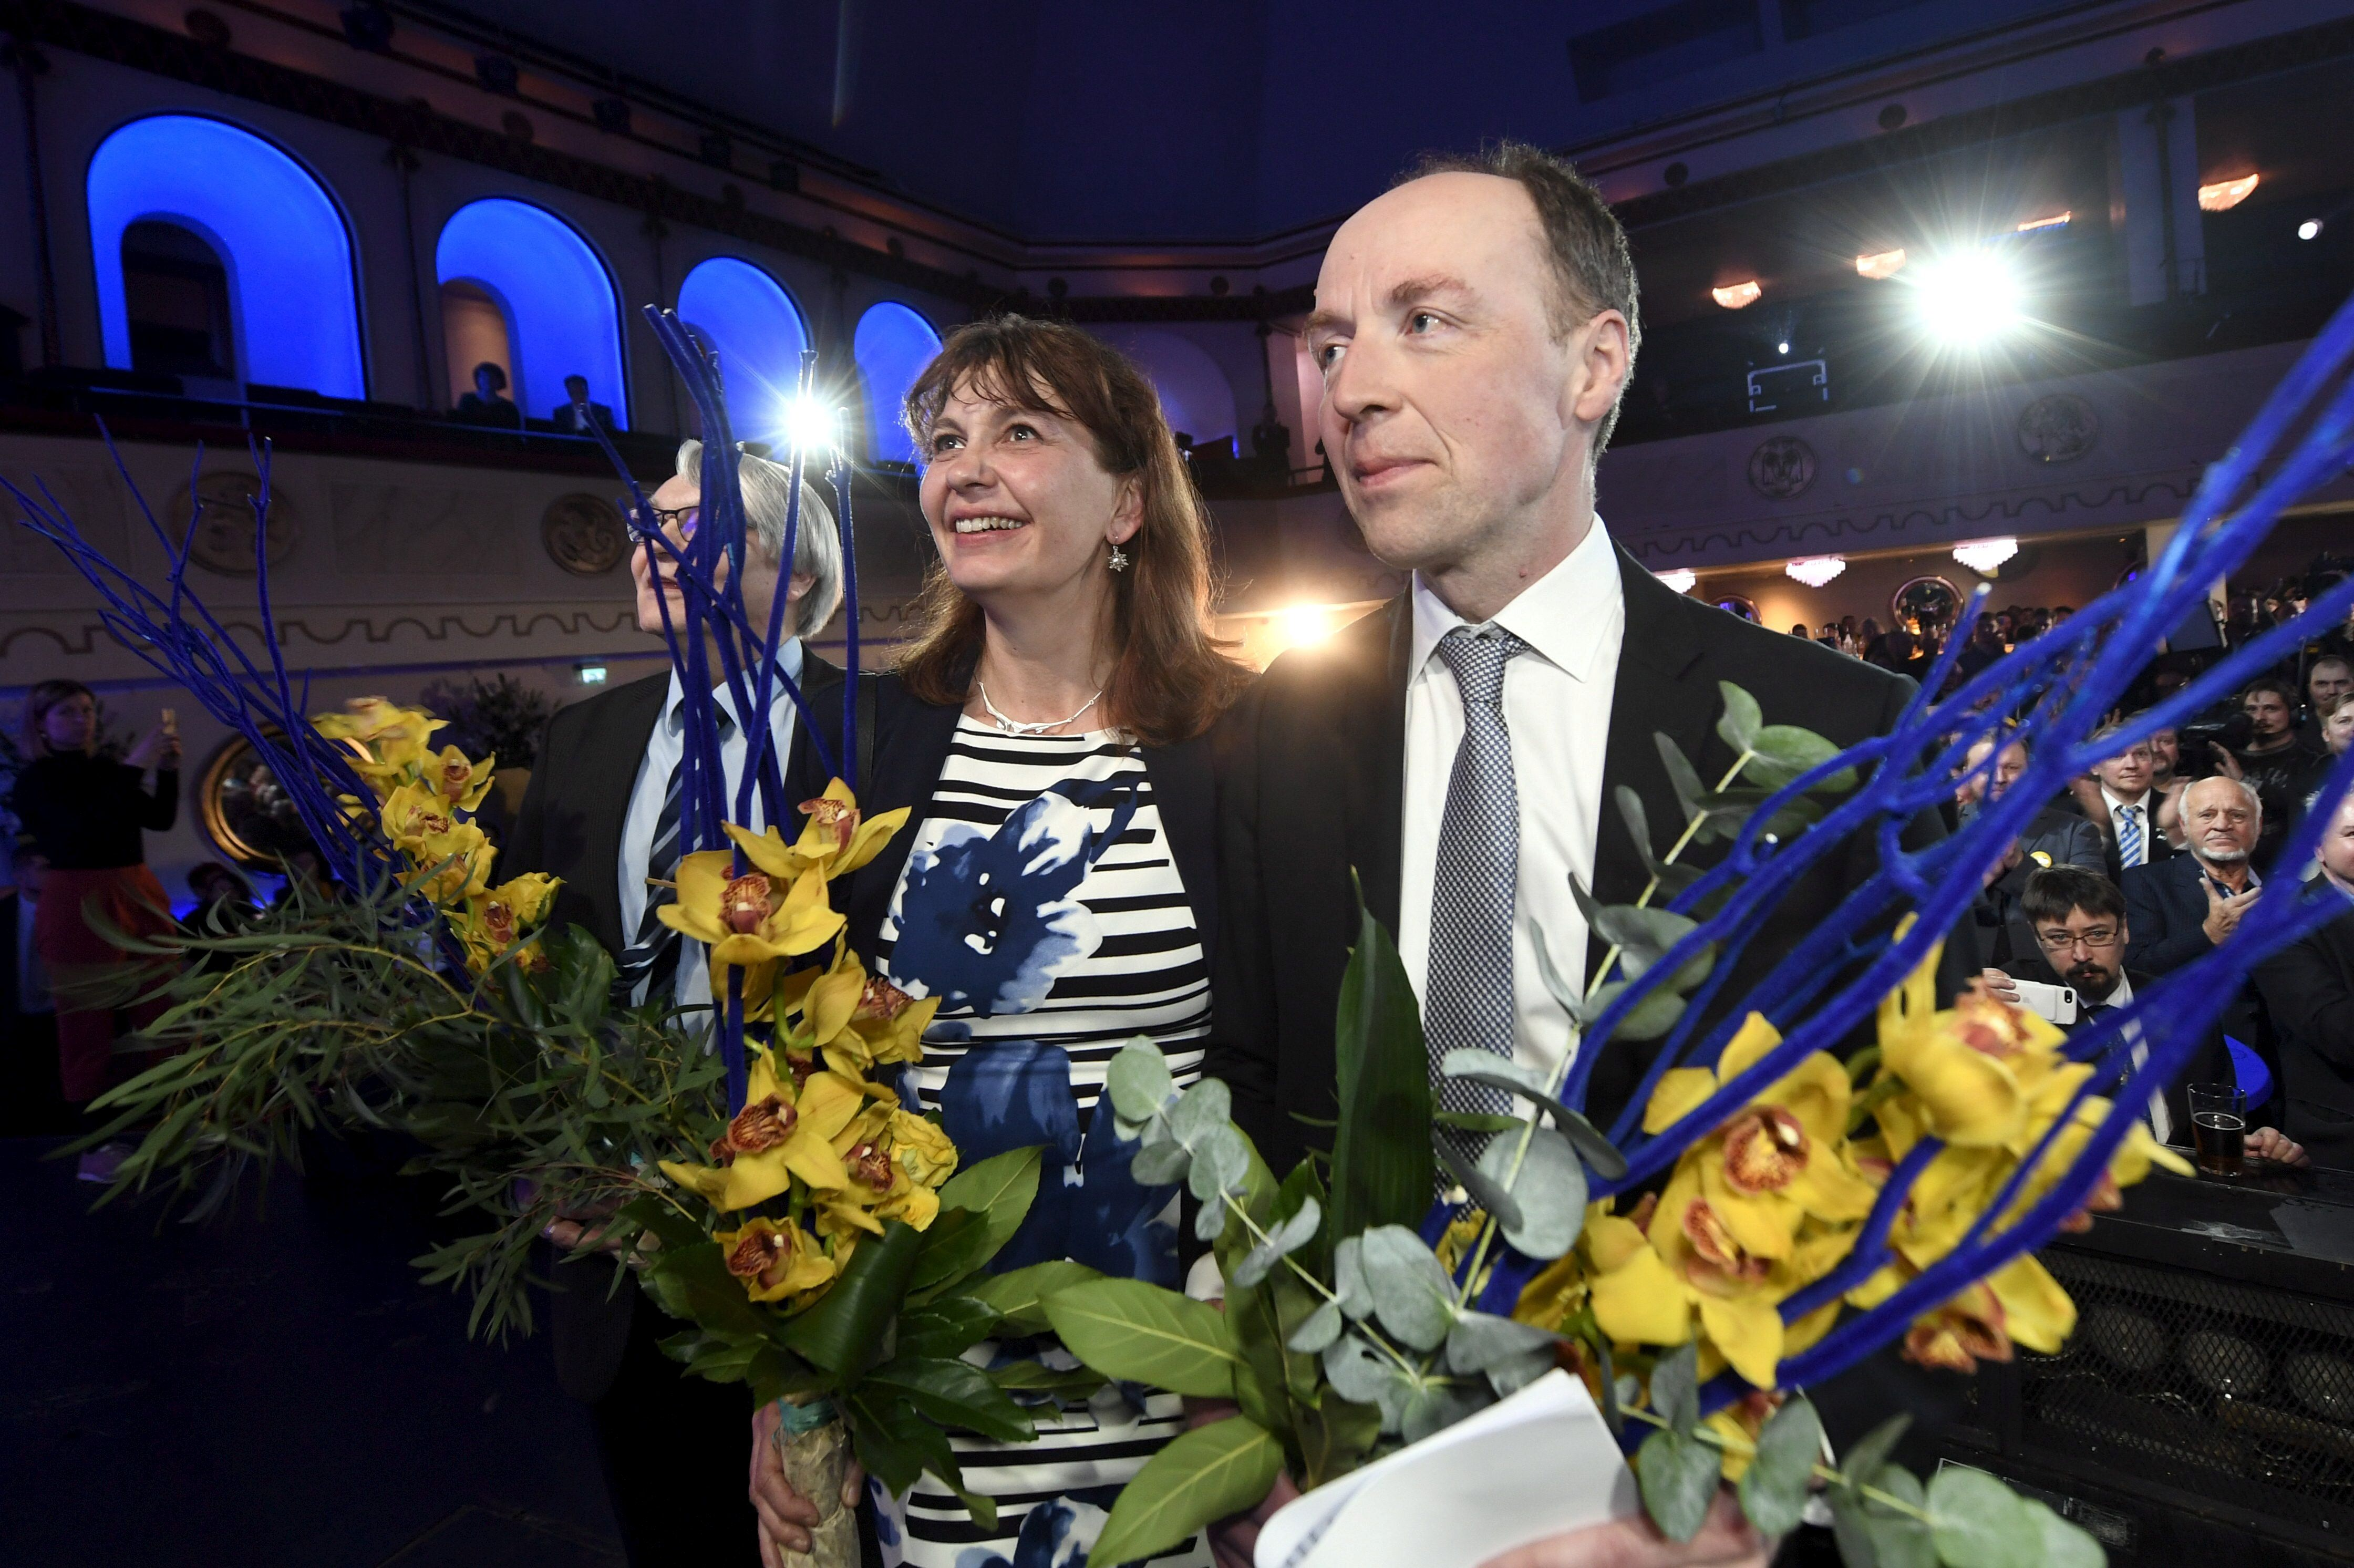 Finnish Populists Shift Aim From Browns to Greens